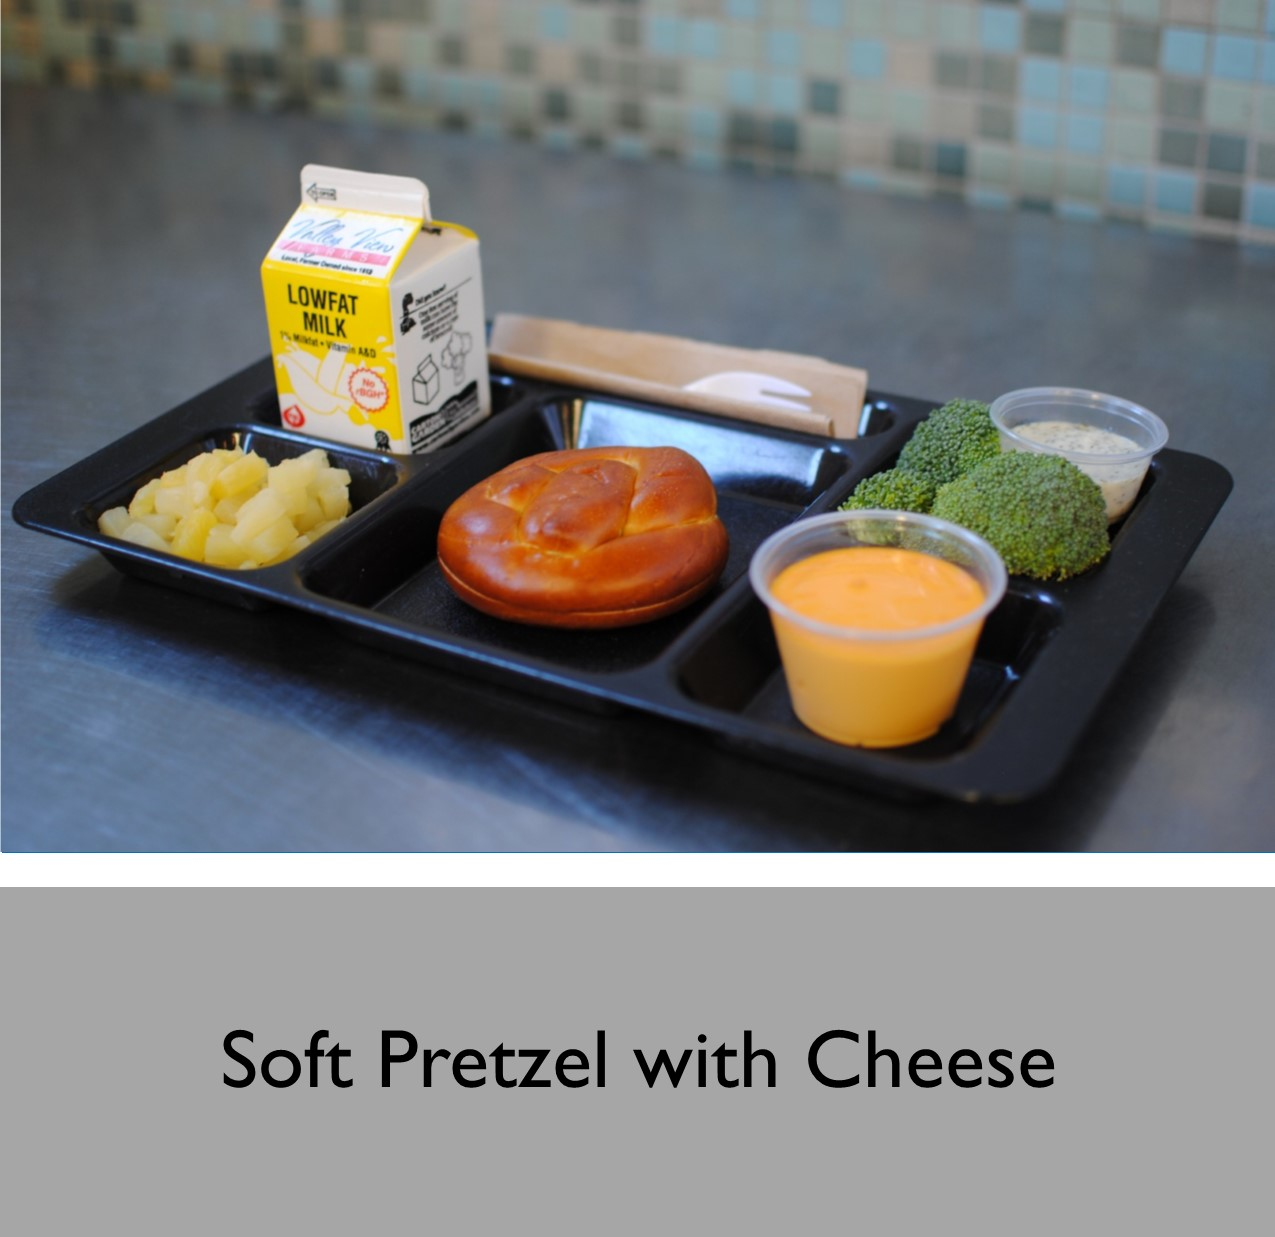 Soft Pretzel with Cheese